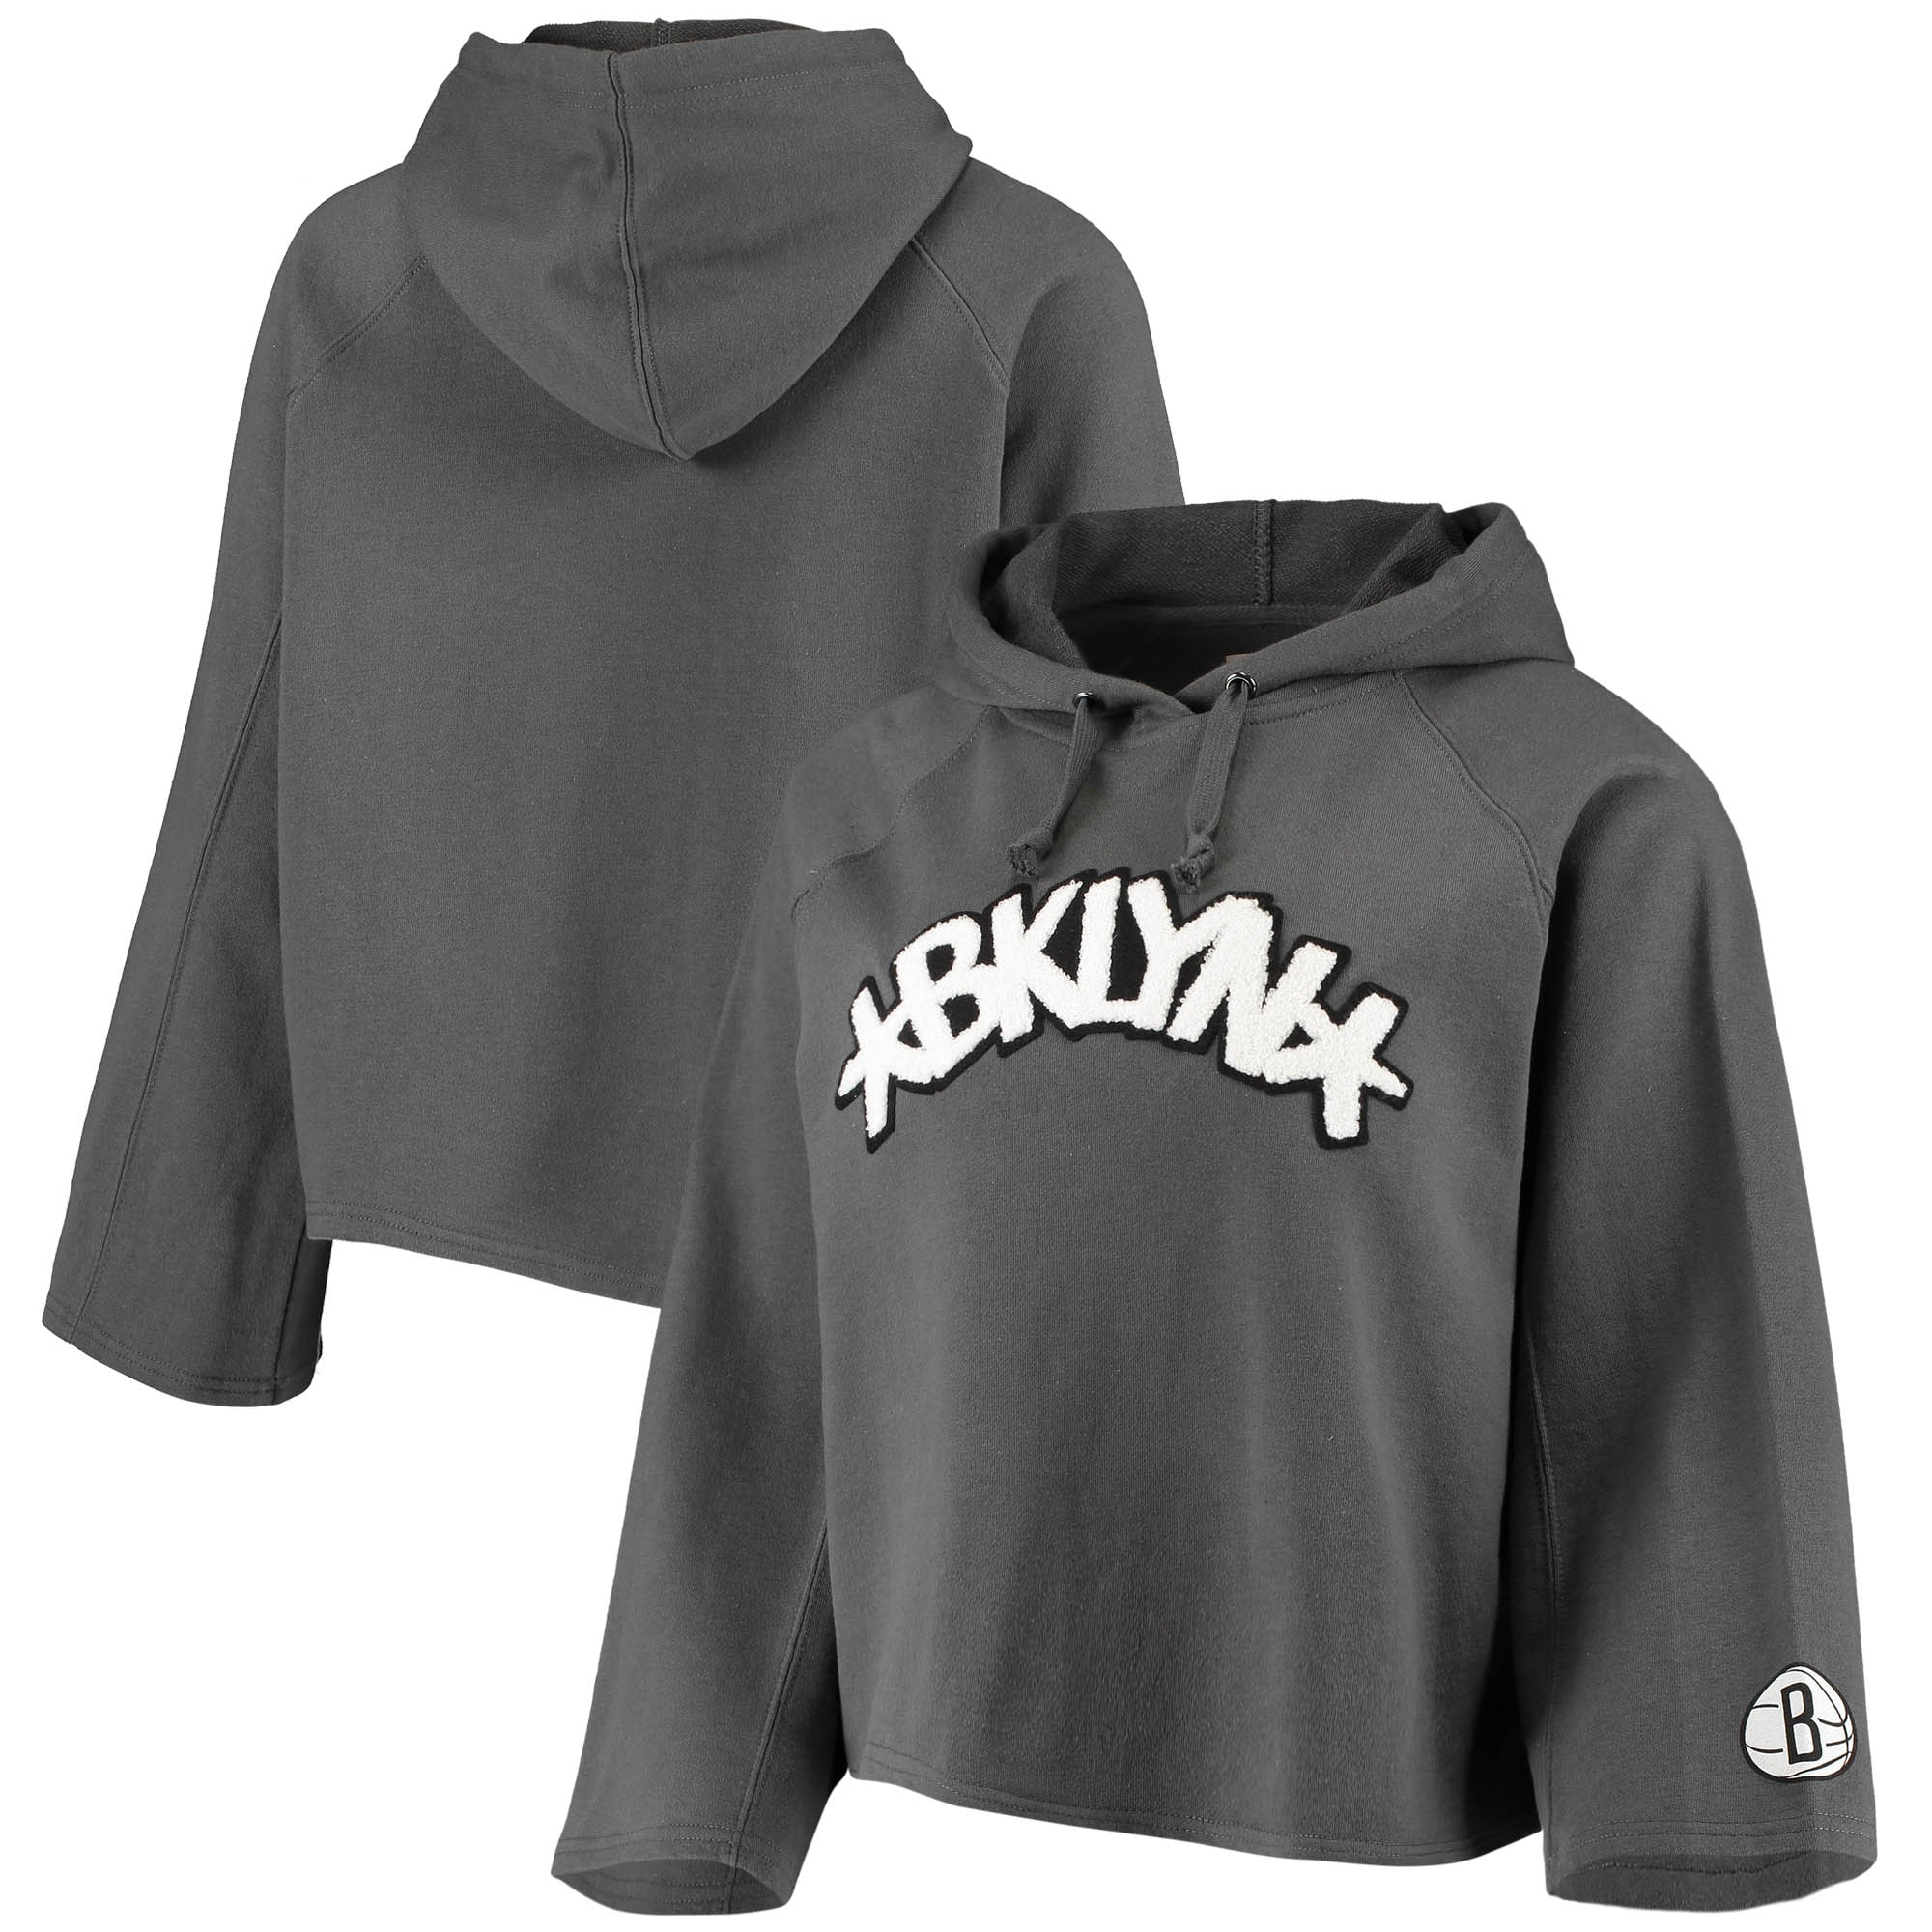 Brooklyn Nets Sportiqe Women's Chenille Logo Bell Sleeve Cropped Pullover Hoodie - Heathered Gray